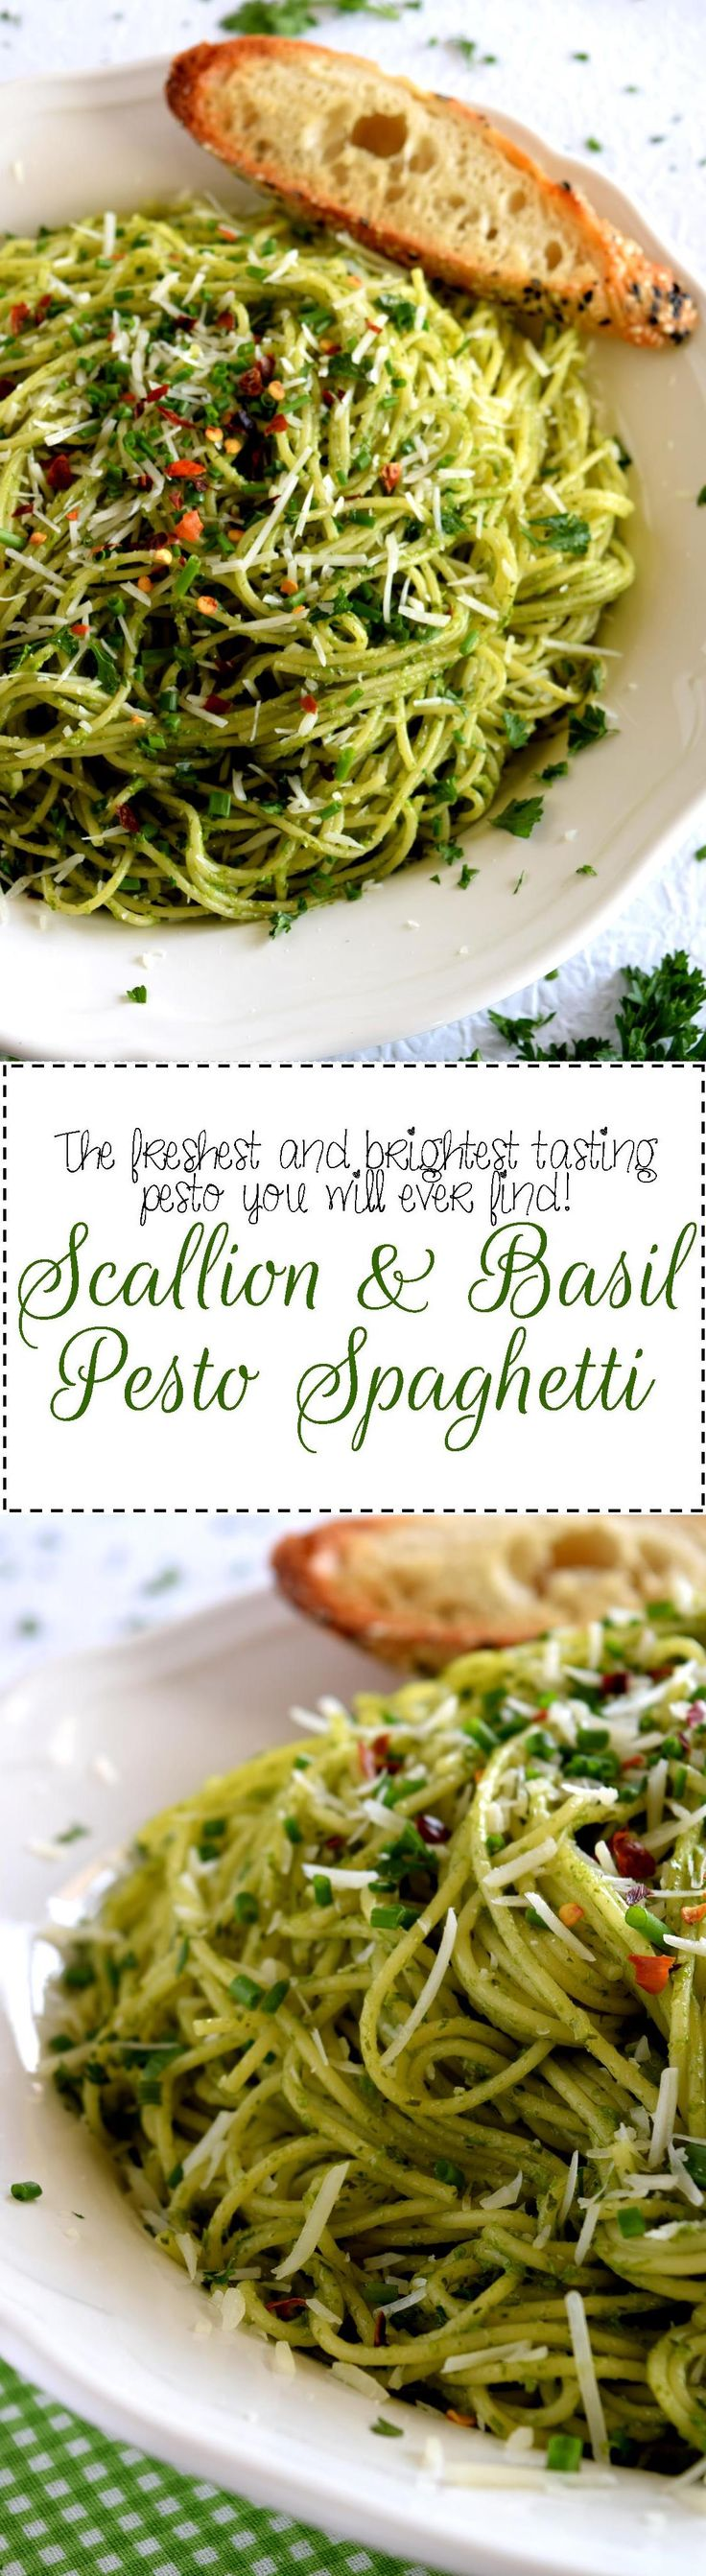 Scallion and Basil Pesto Spaghetti - Crisp, summery, onion flavour with a fresh basil and lemon undertone – Scallion and Basil Pesto Spaghetti is bound to be your new favourite pasta!  Simple ingredients, quick and easy to prepare, this pesto fits into any dietary preference and is bursting with flavour!